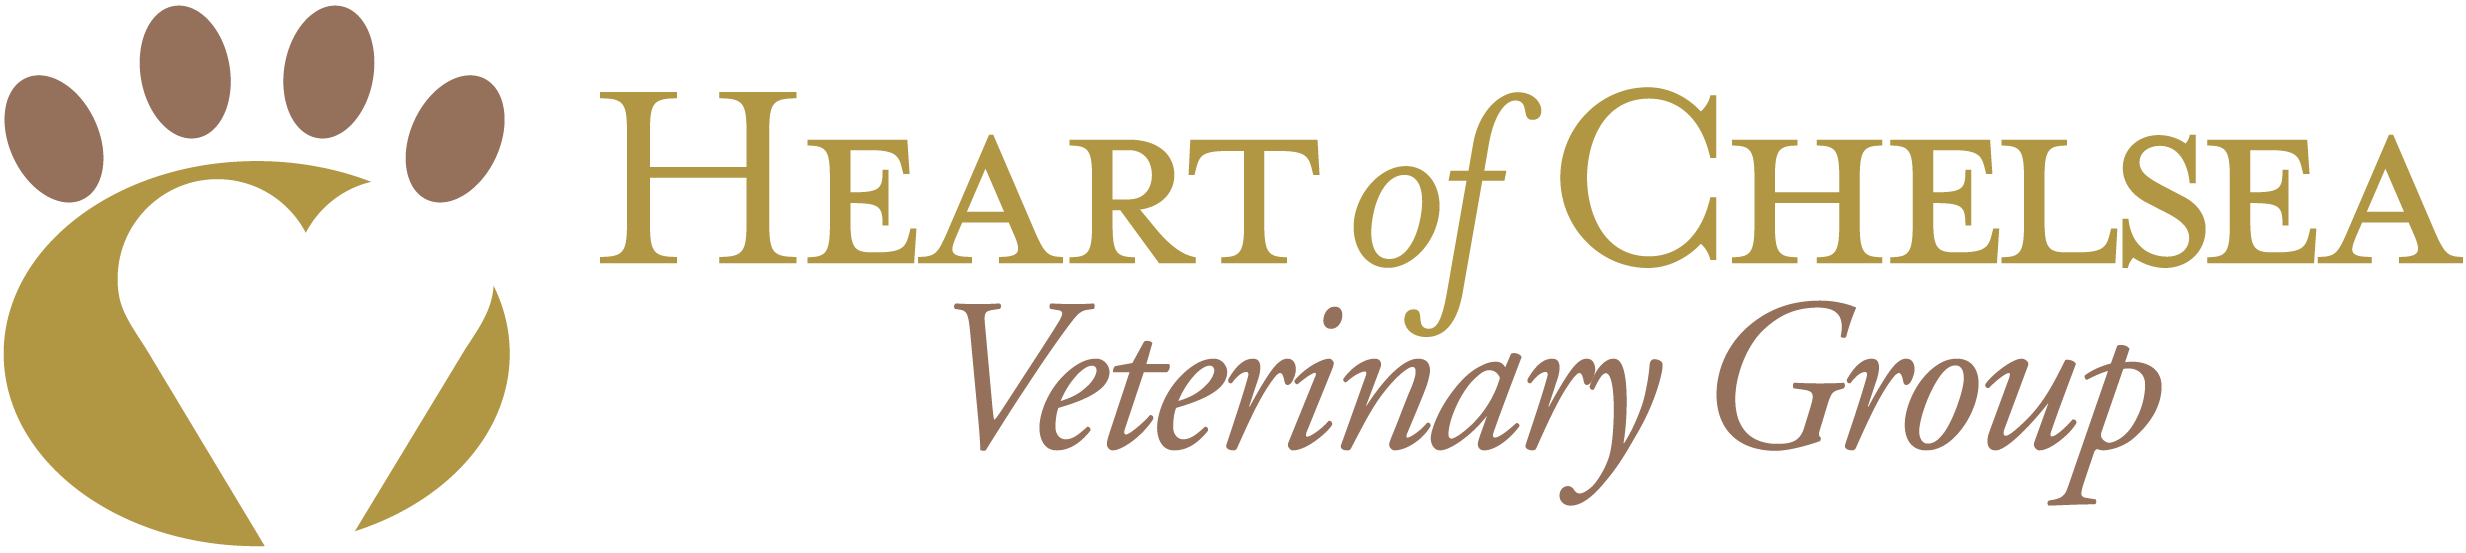 Heart of Chelsea Veterinary Group